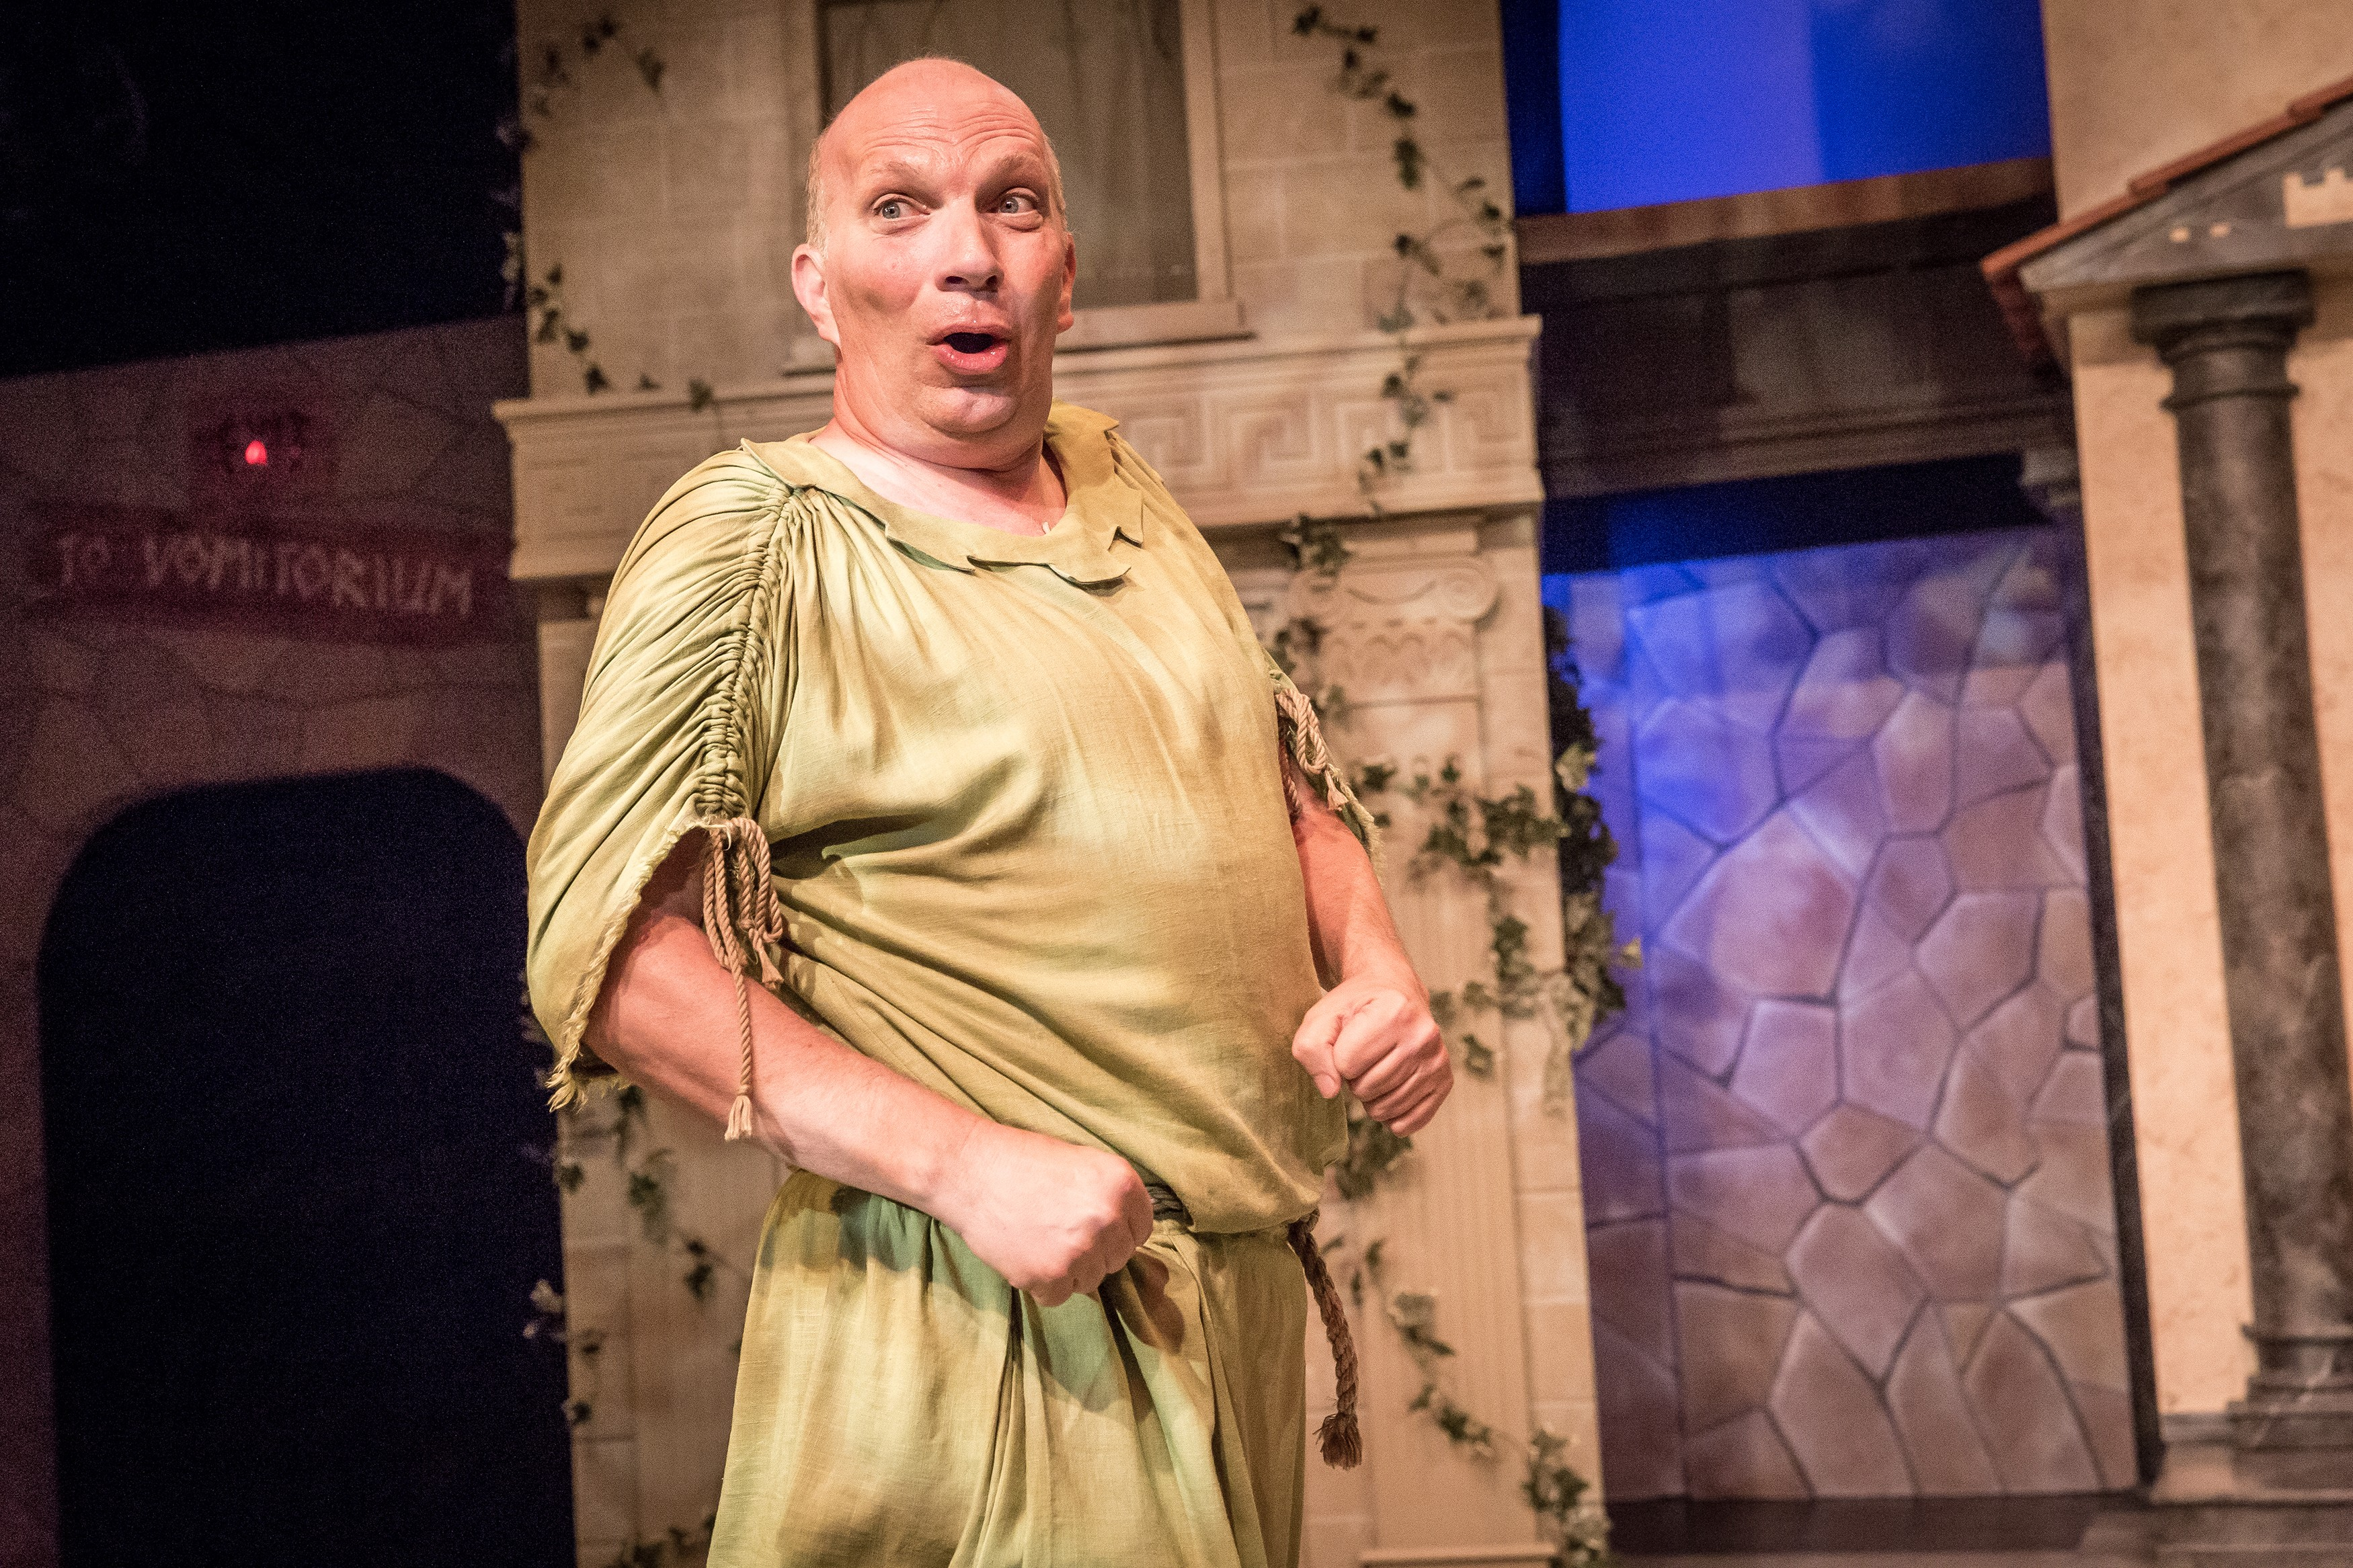 Broadway farce 'A Funny Thing Happened on the Way to the Forum